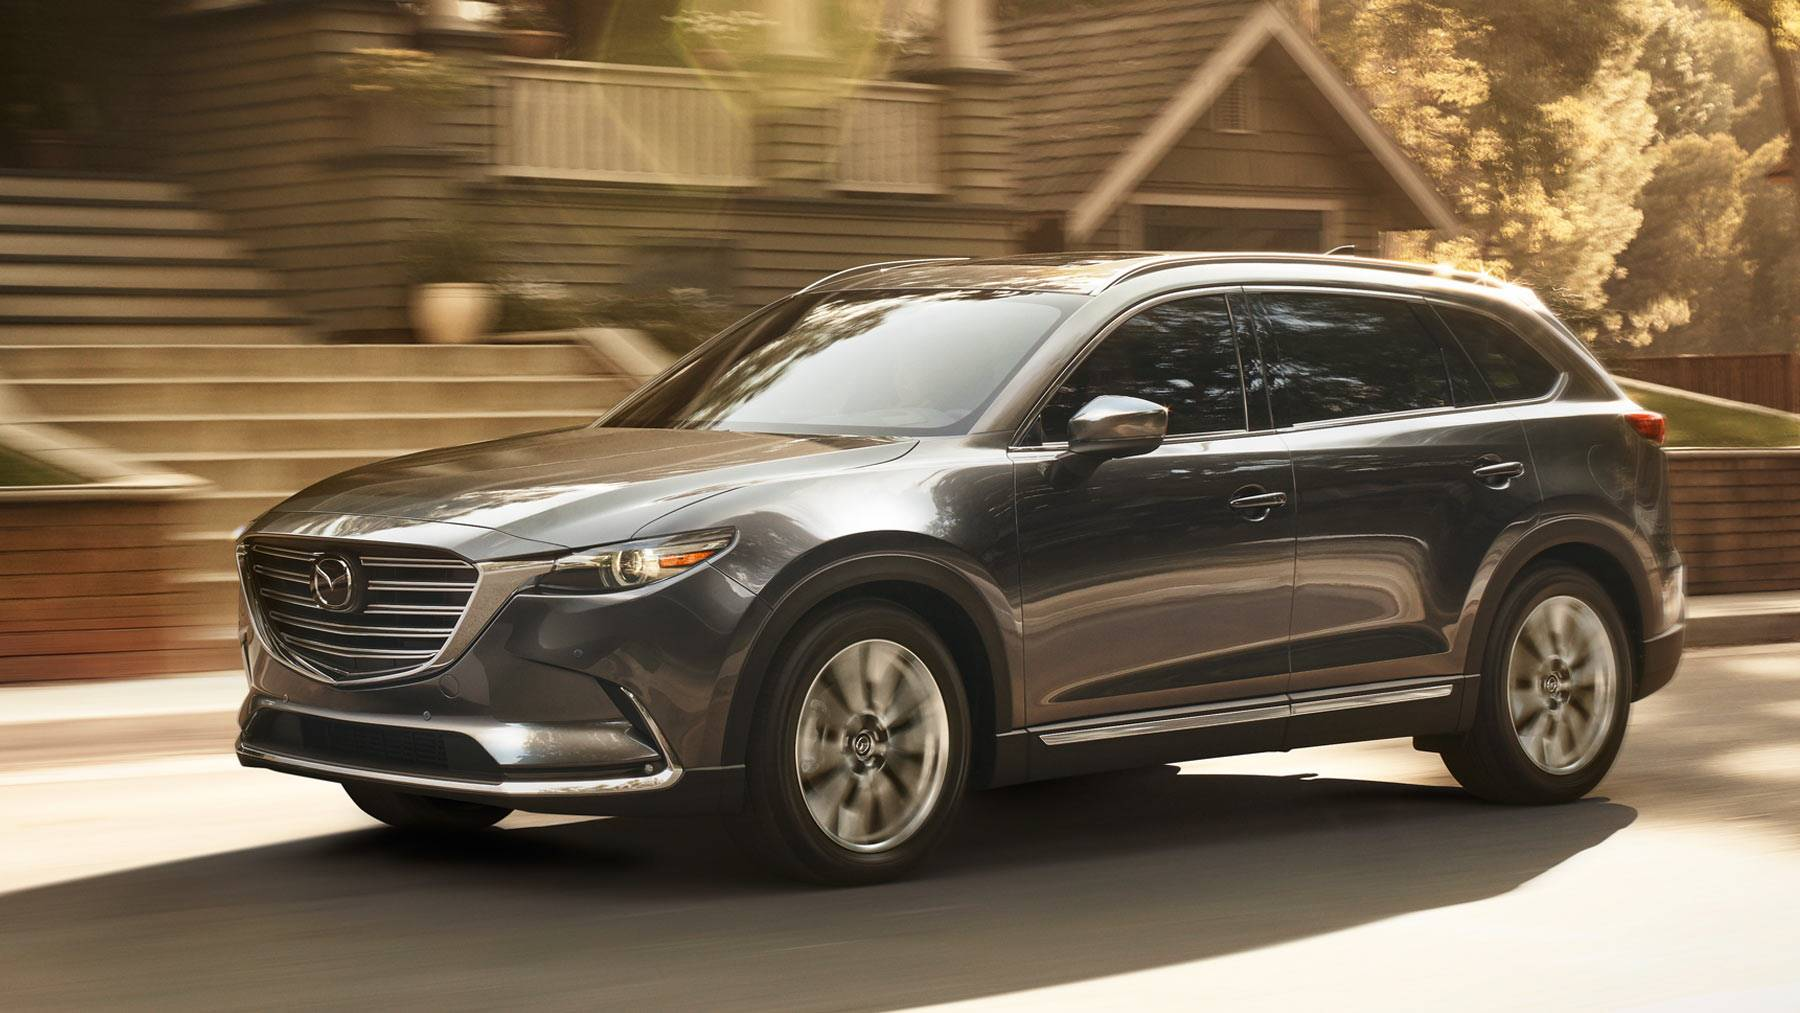 2018 Mazda CX 9 For Sale In New Braunfels, TX